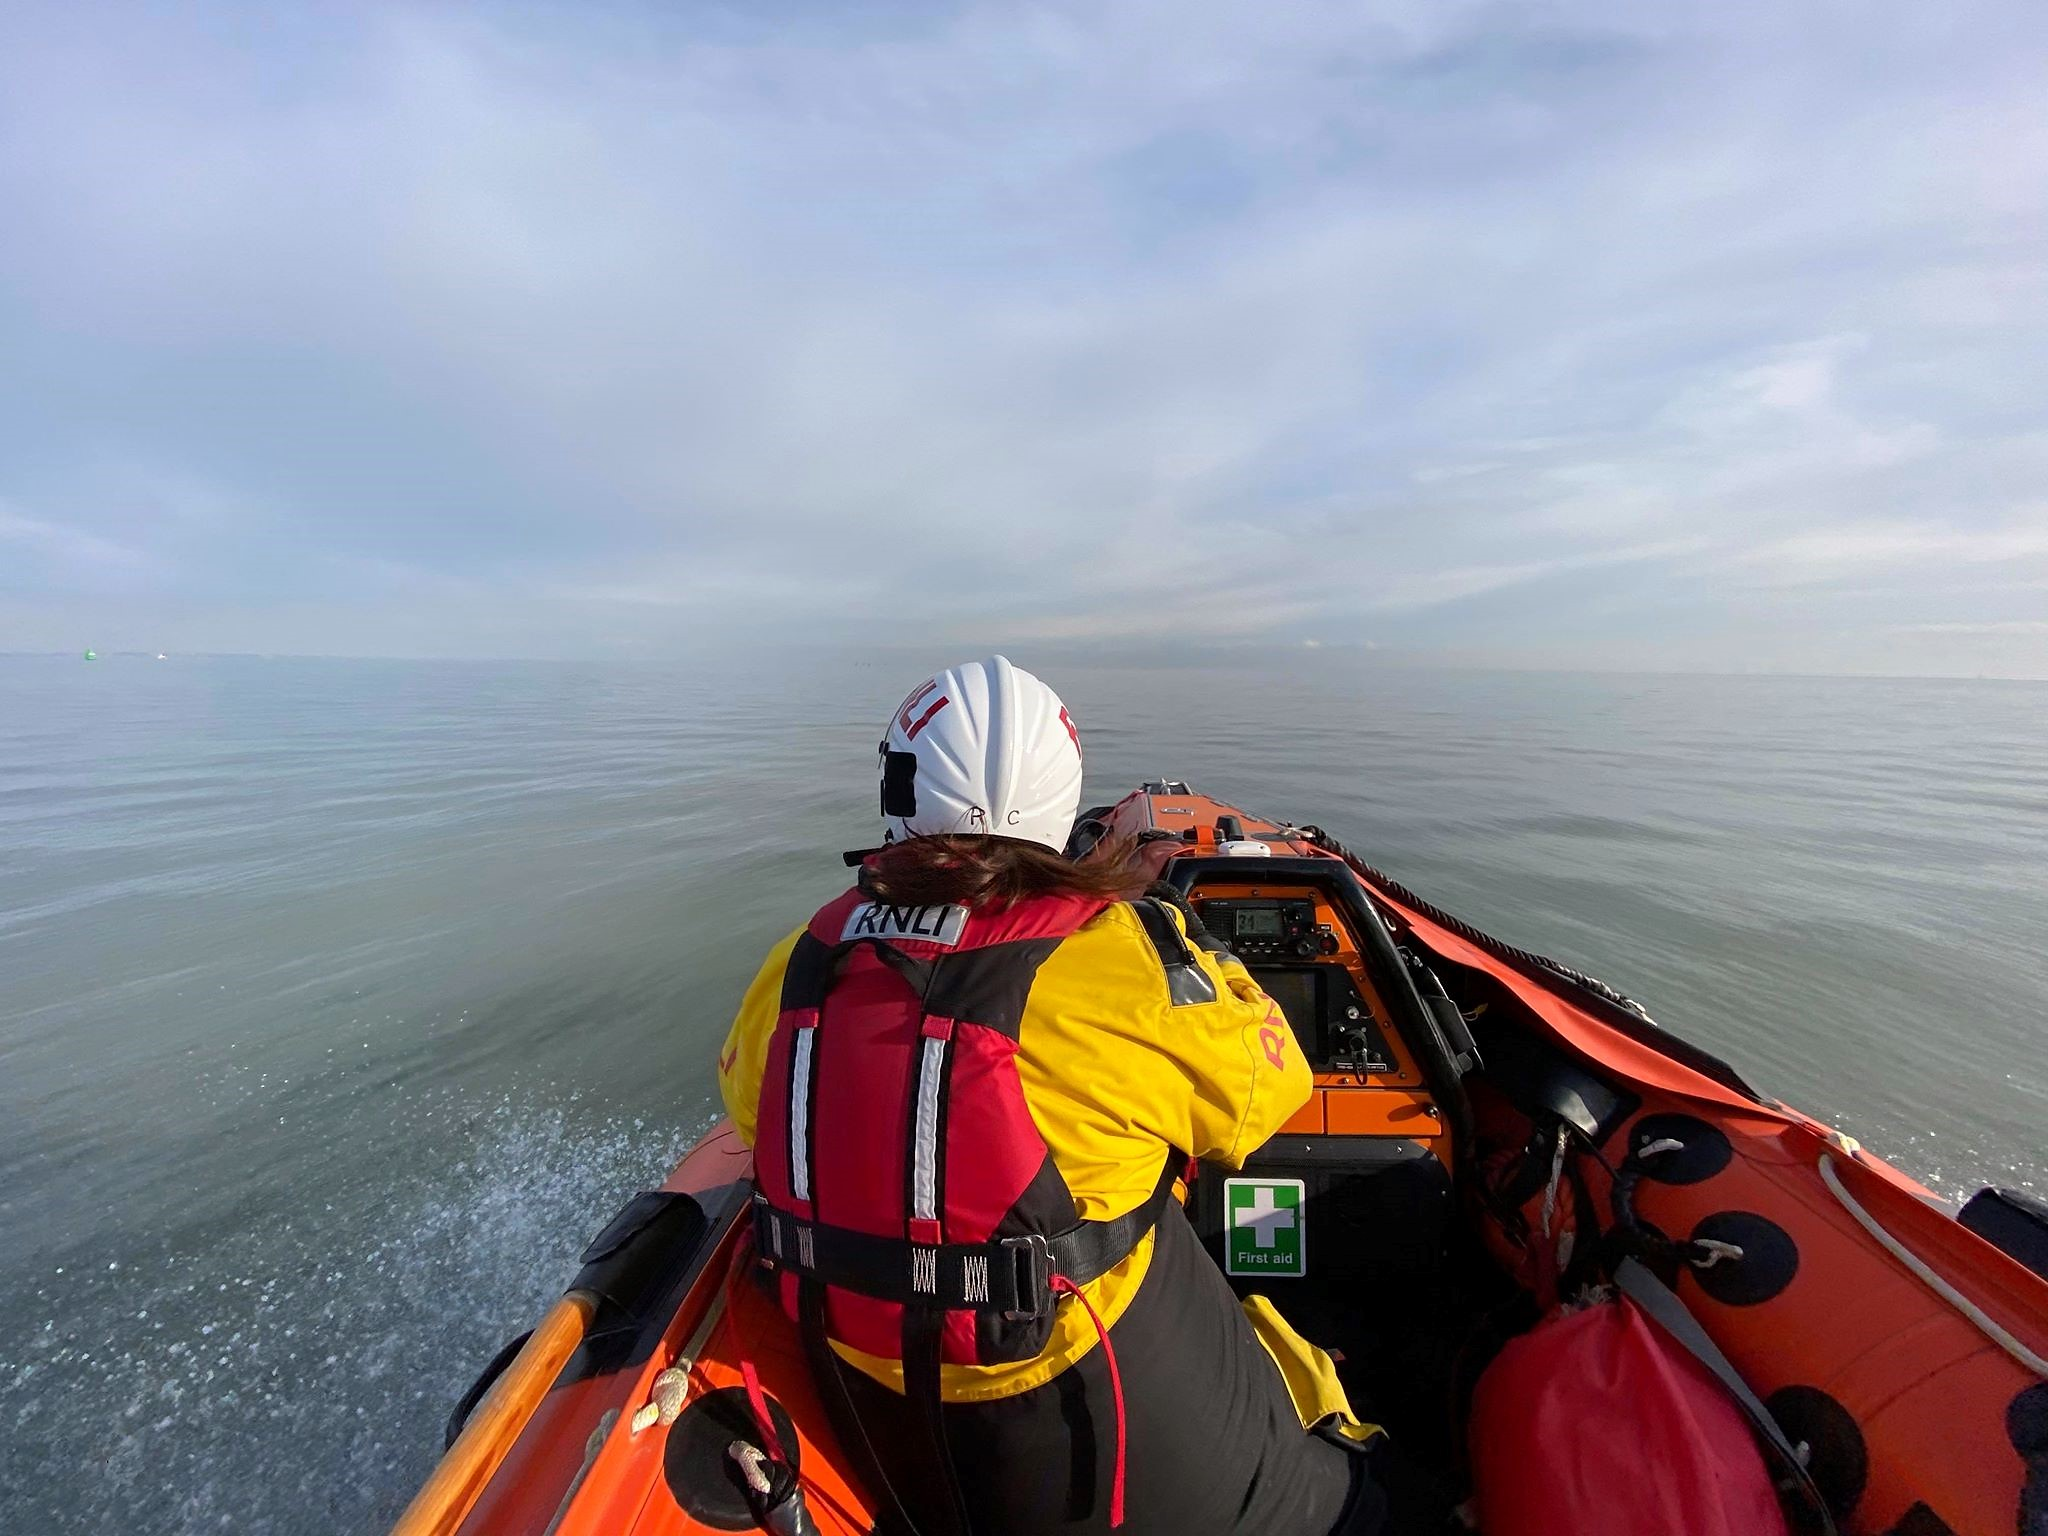 Sheerness ILB on a training excercise off the Isle Of Sheppey in 'flat calm' conditions and not a windsurfer in sight.